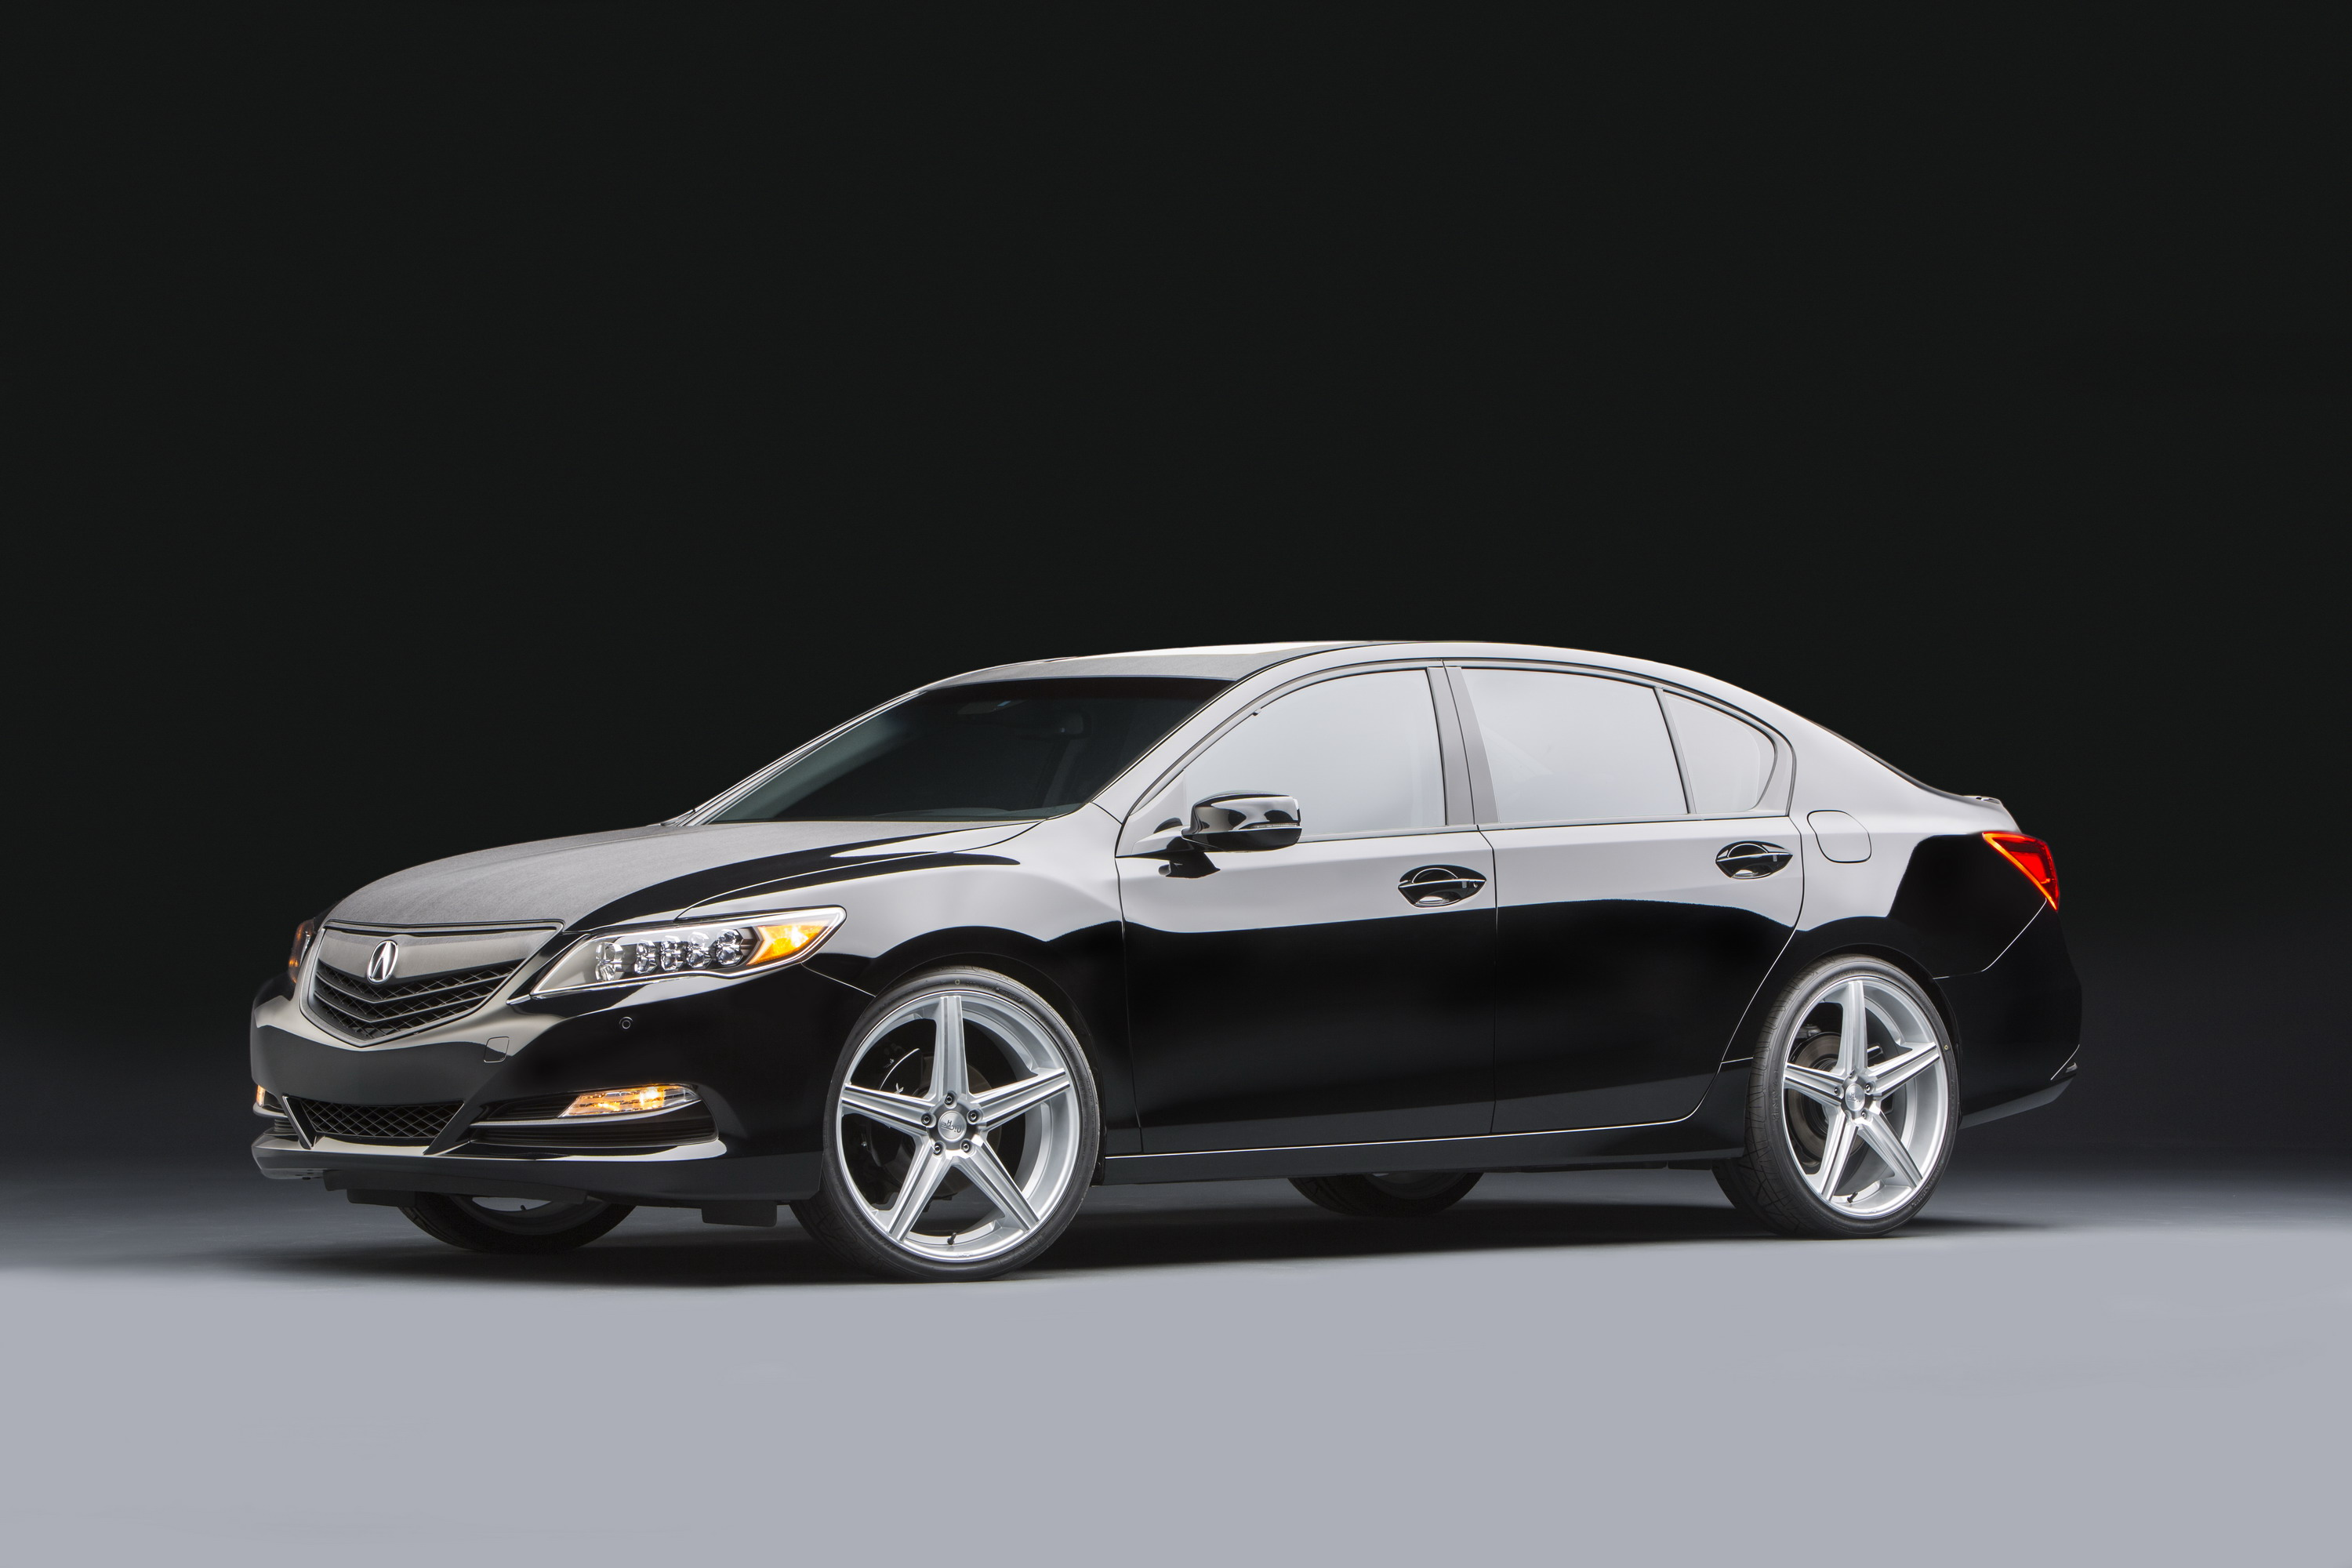 2014 Top 10 Luxury Sedans: 2014 Acura RLX Urban Luxury Sedan